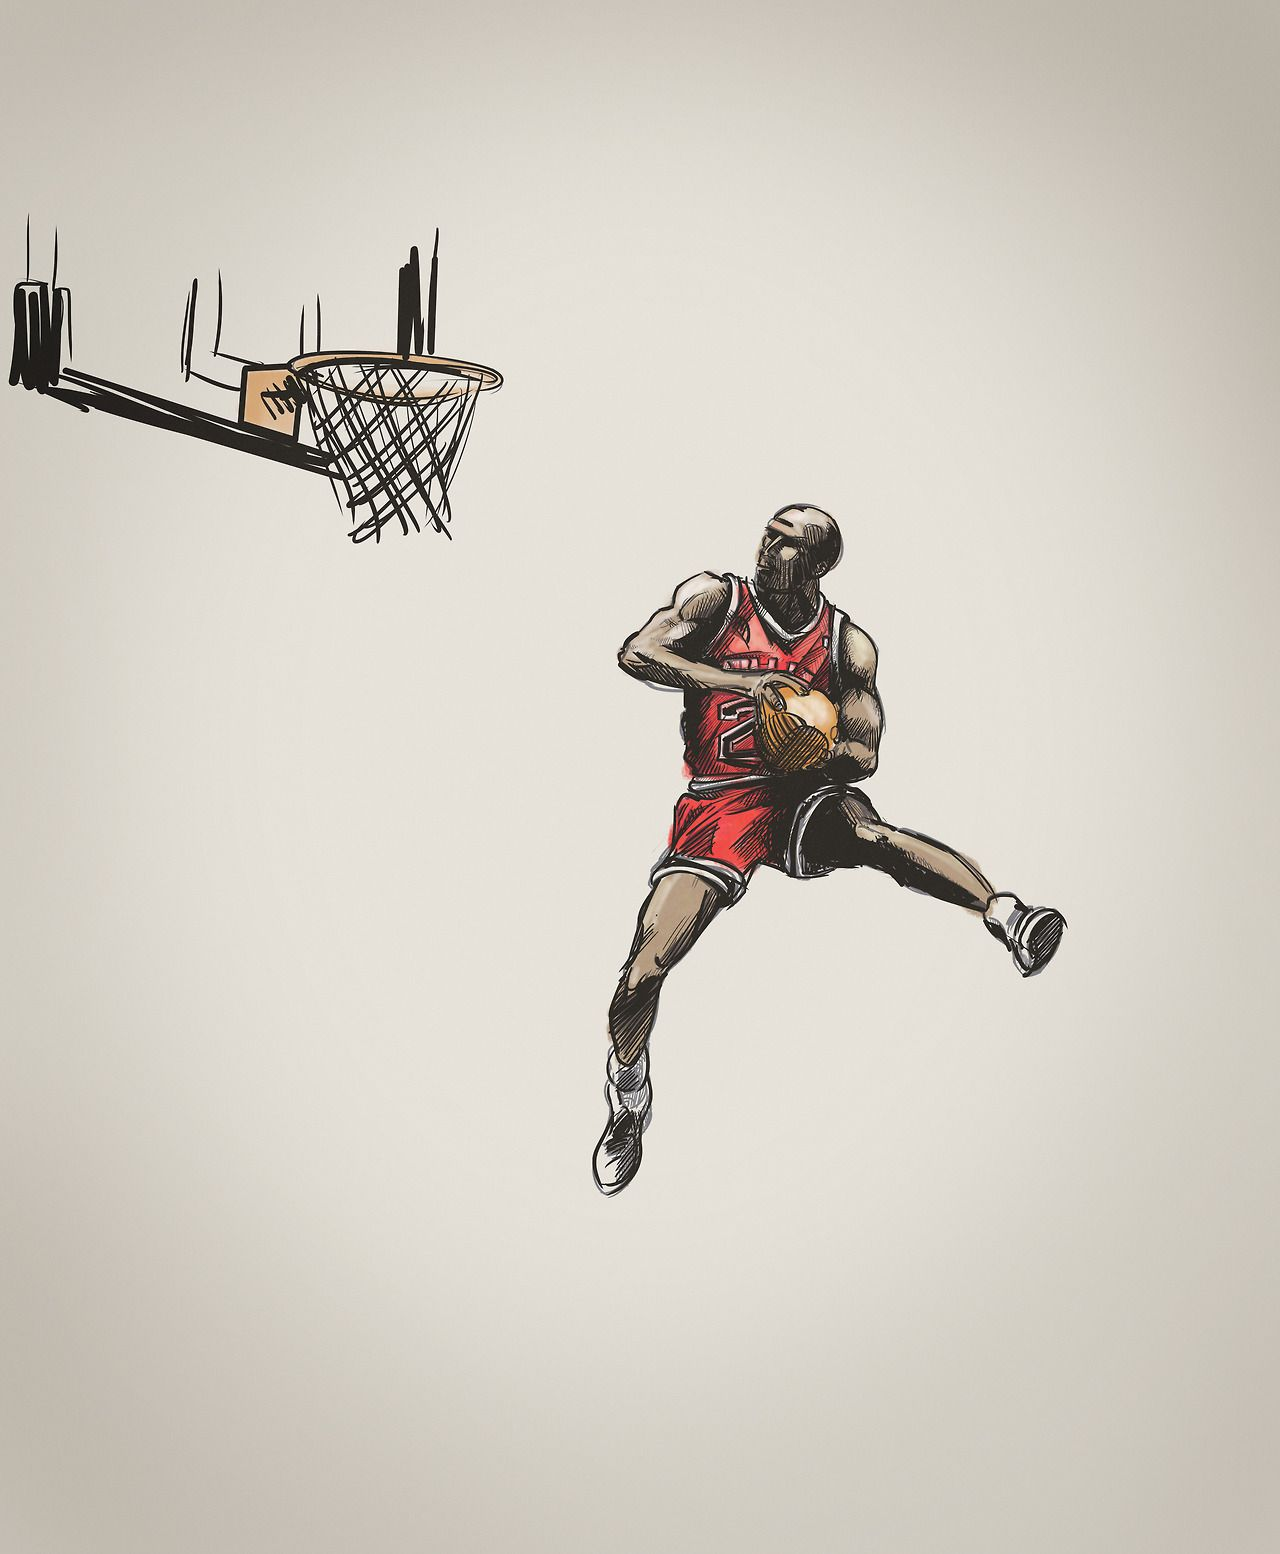 1280x1554 Pin By Rubennic On Mj (23) Michael Jordan, Jordan 23